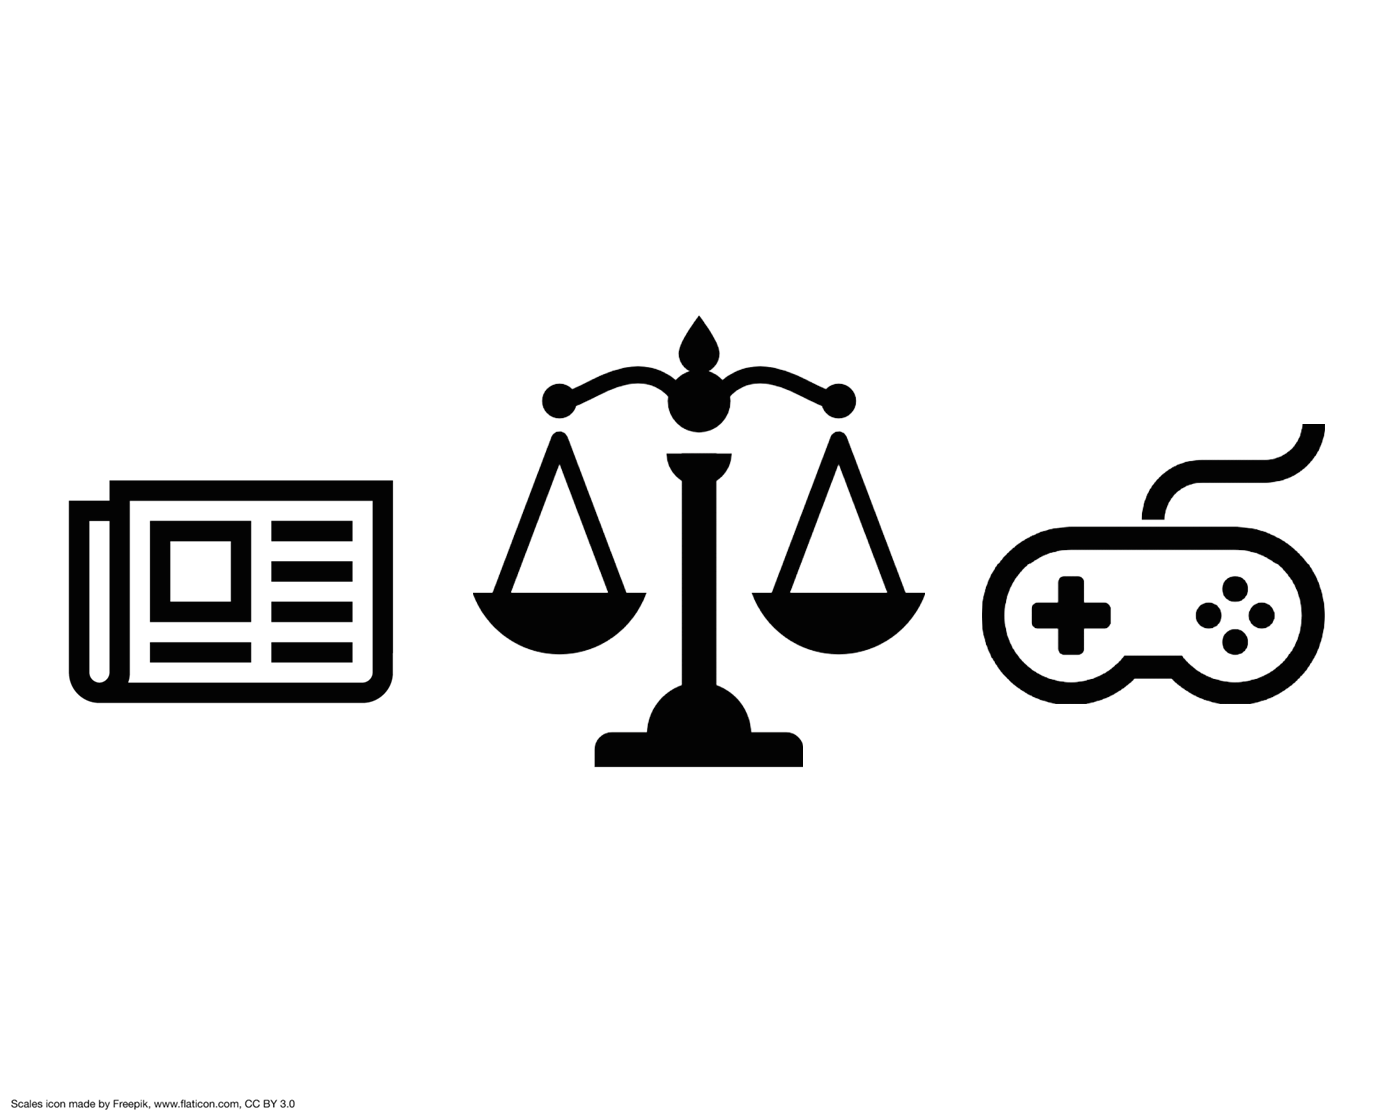 Honesty clipart justice, Honesty justice Transparent FREE